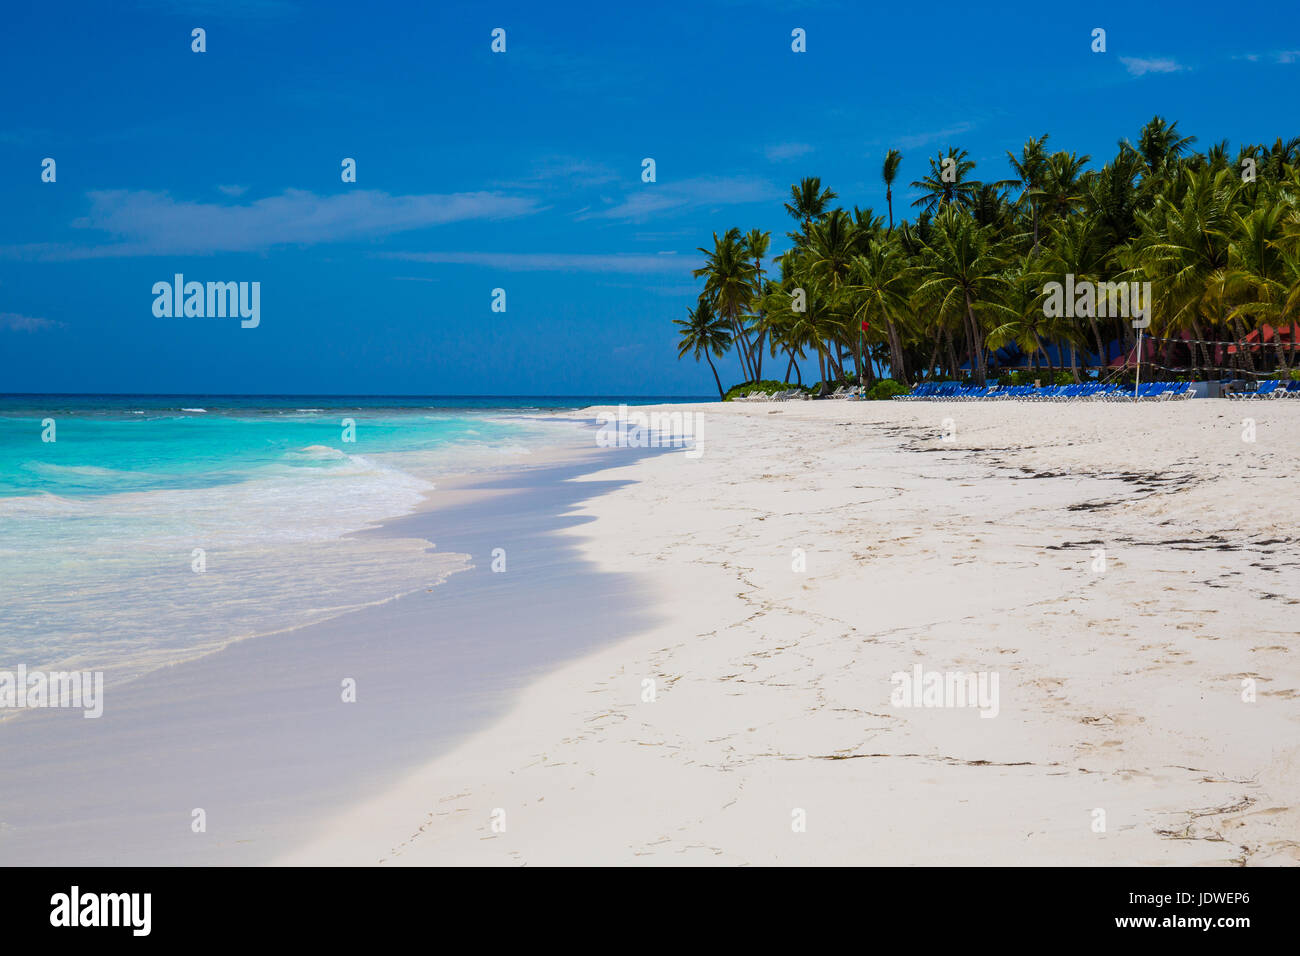 Caribbean Sea and an island with palm trees and white sand - Stock Image